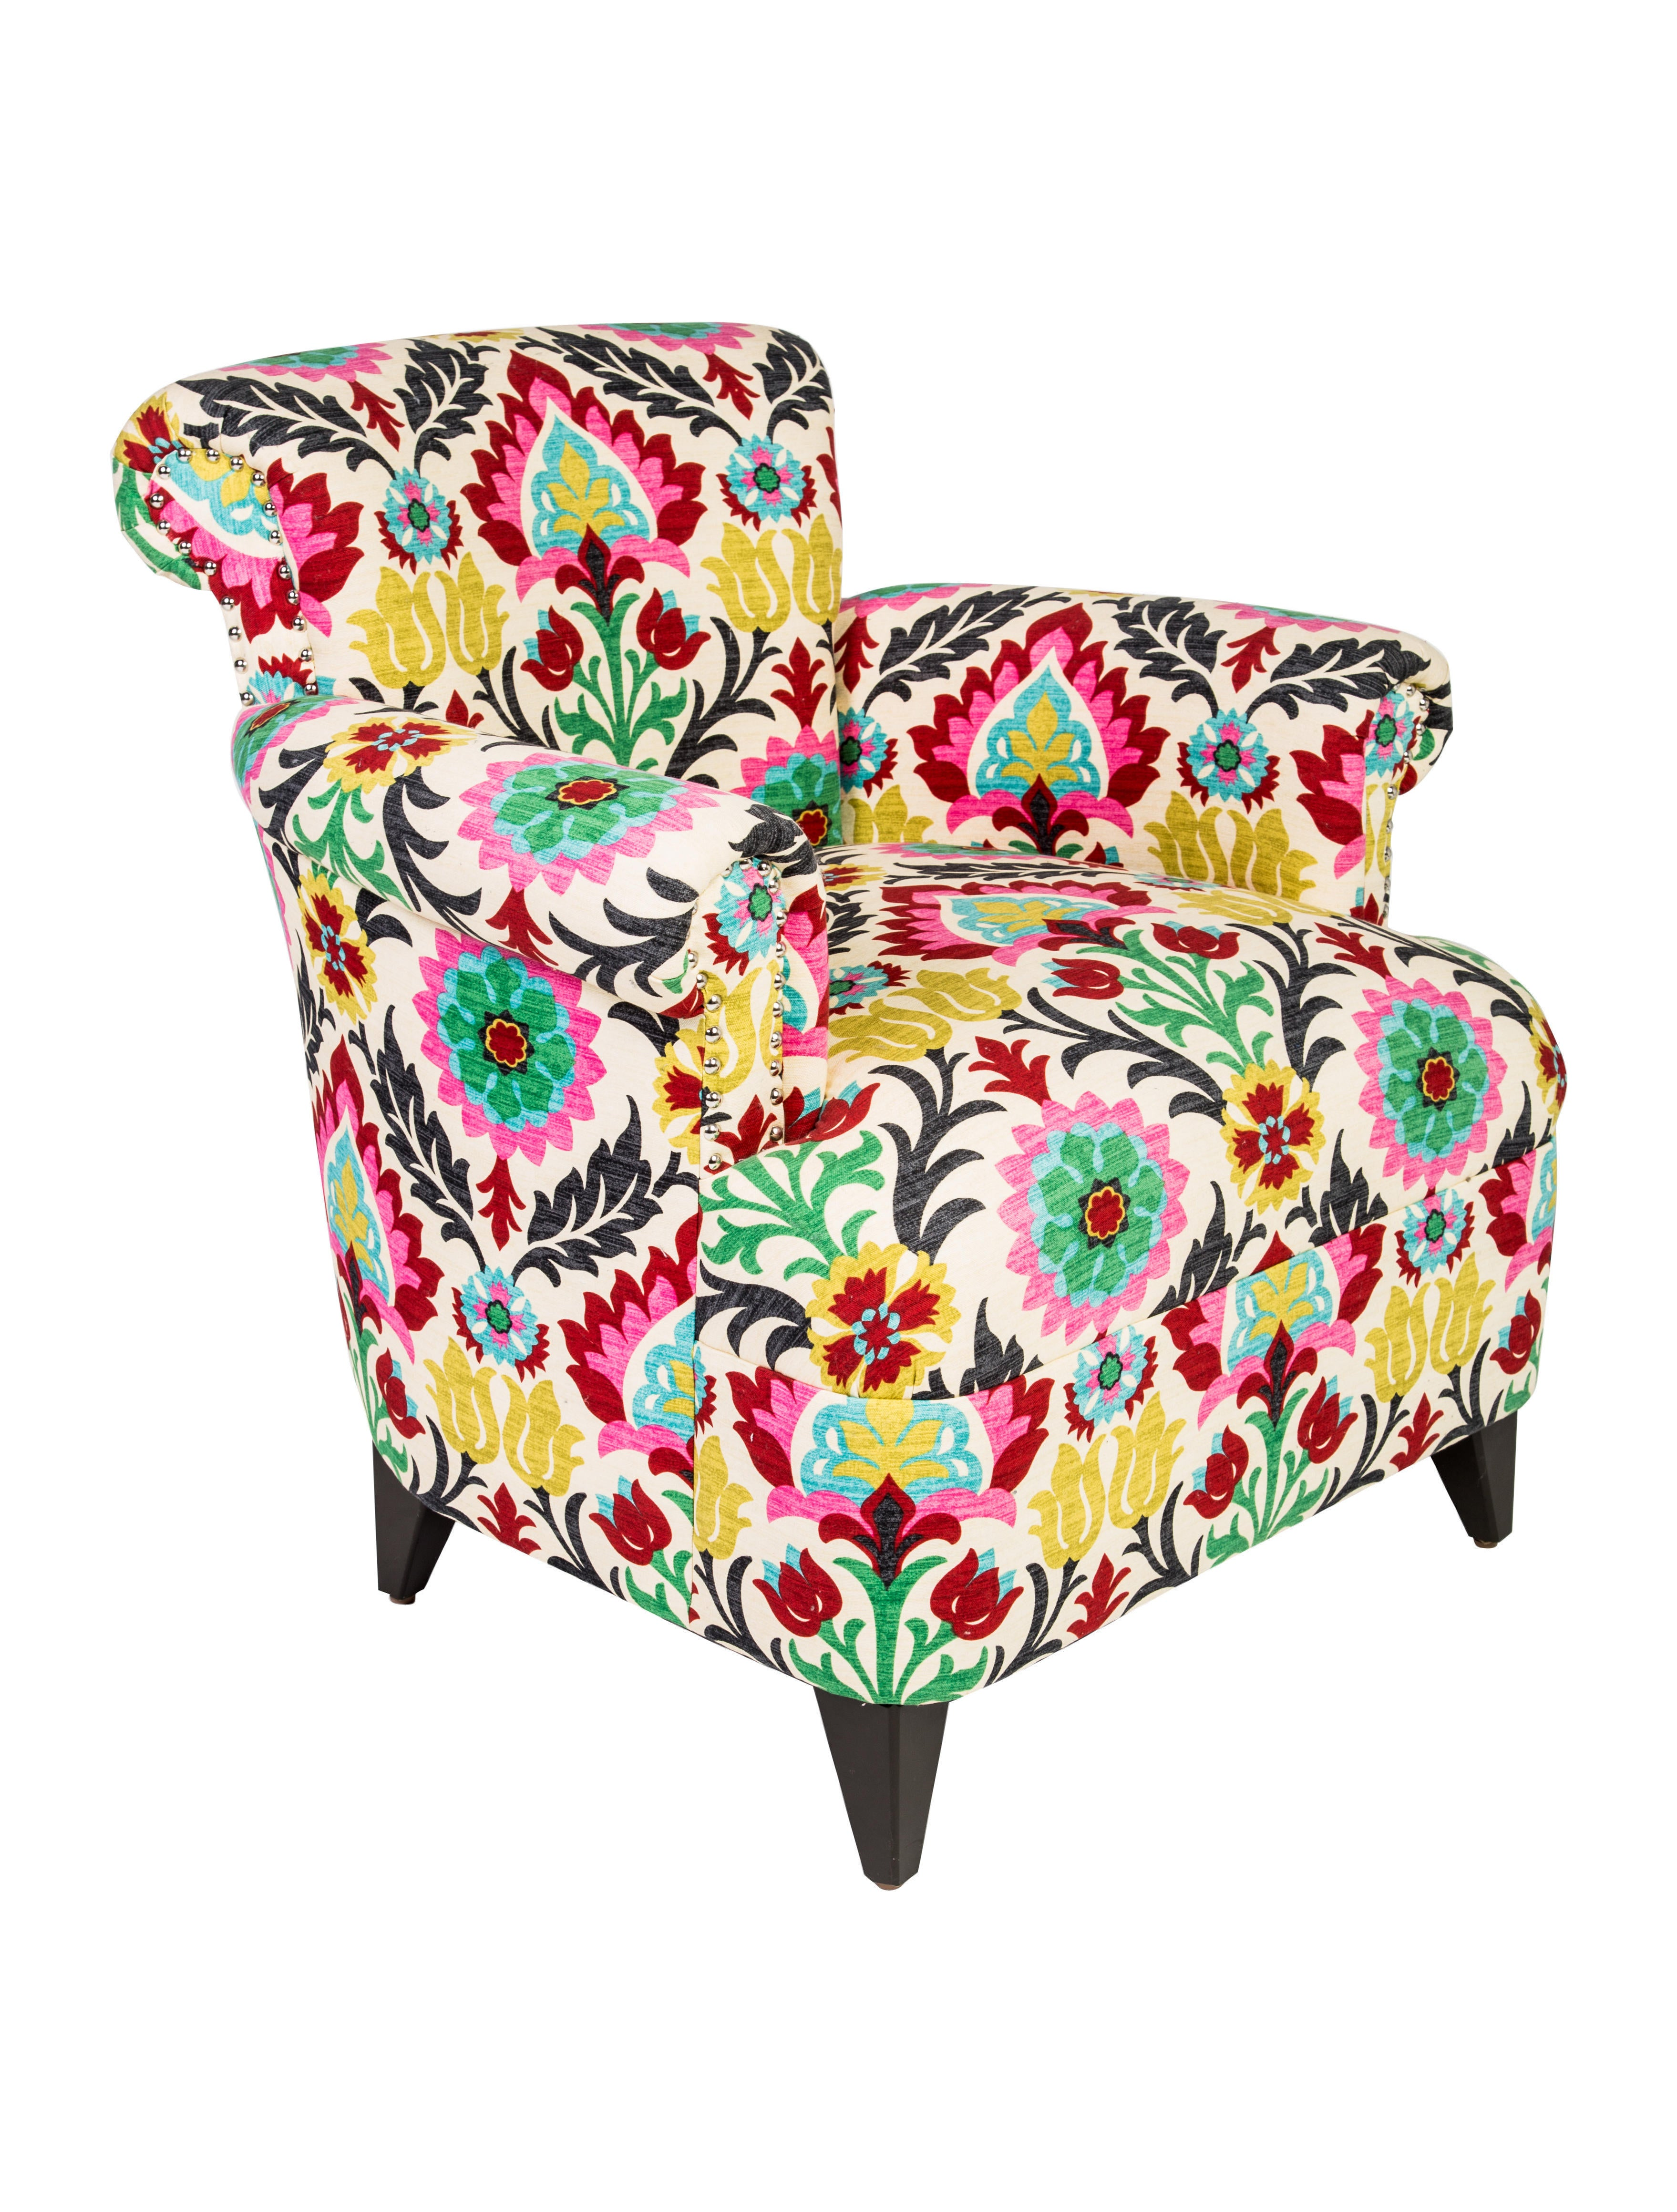 Floral Upholstered Club Chair Furniture Chair20495 The Realreal